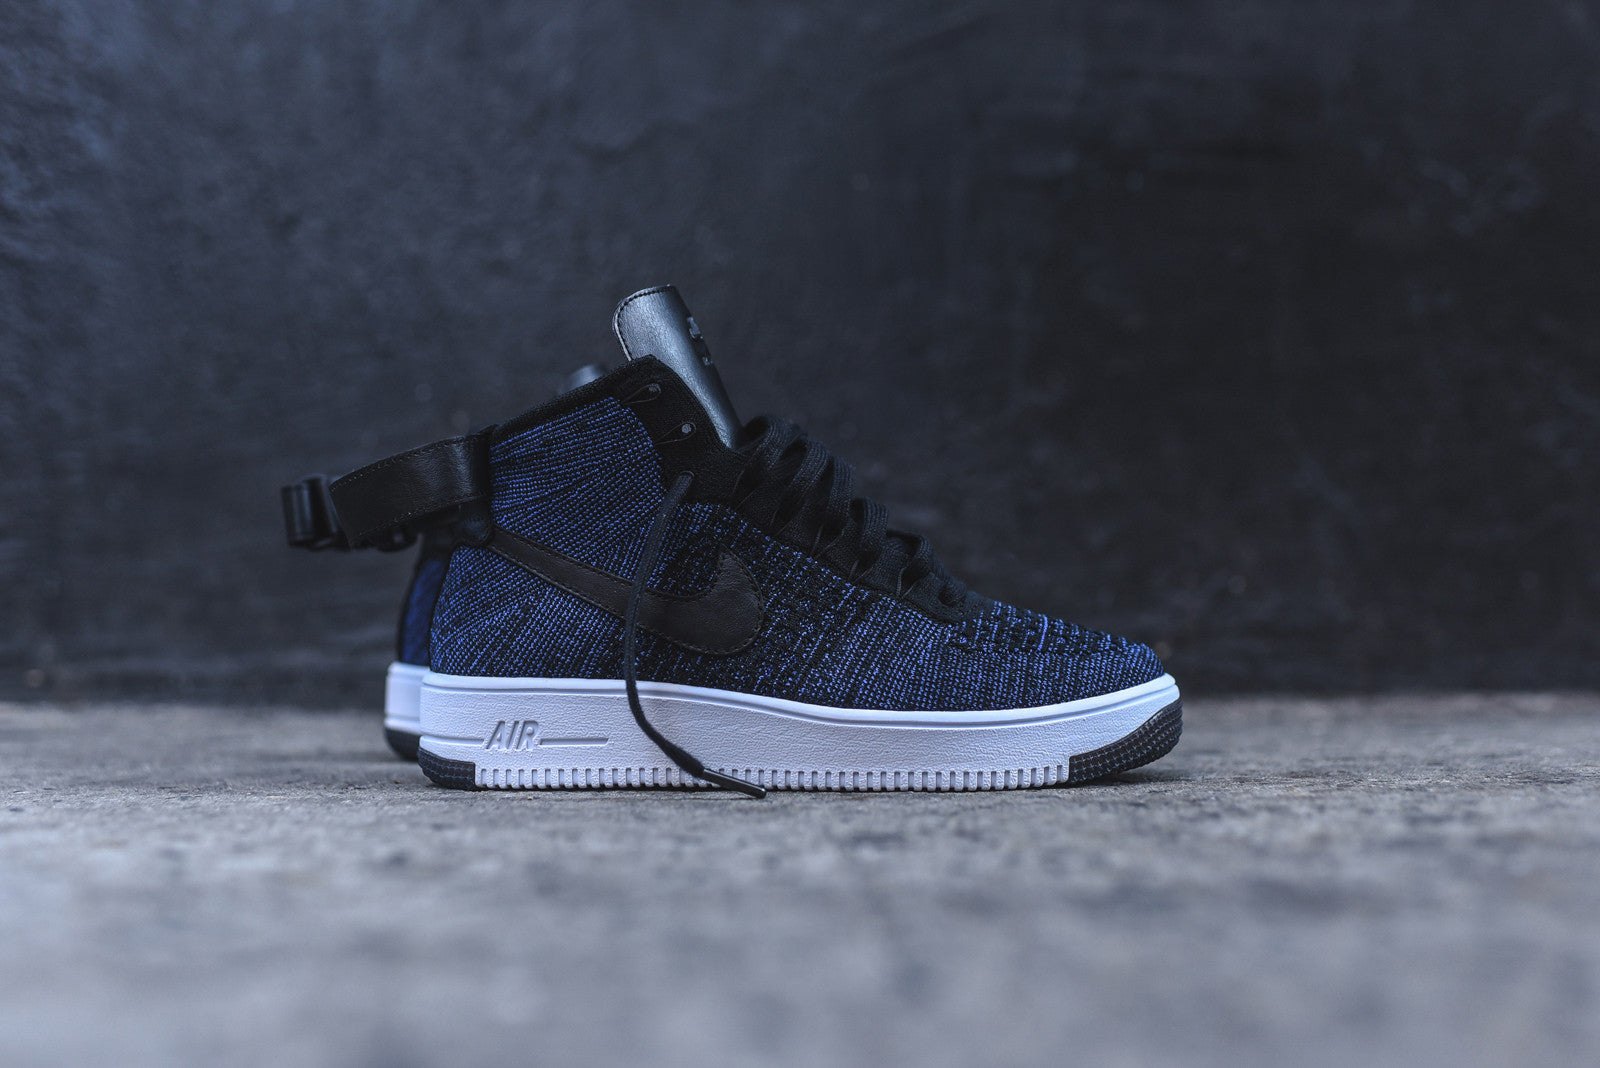 Nike Air Force 1 Ultra Flyknit Mid Game Royal/Black